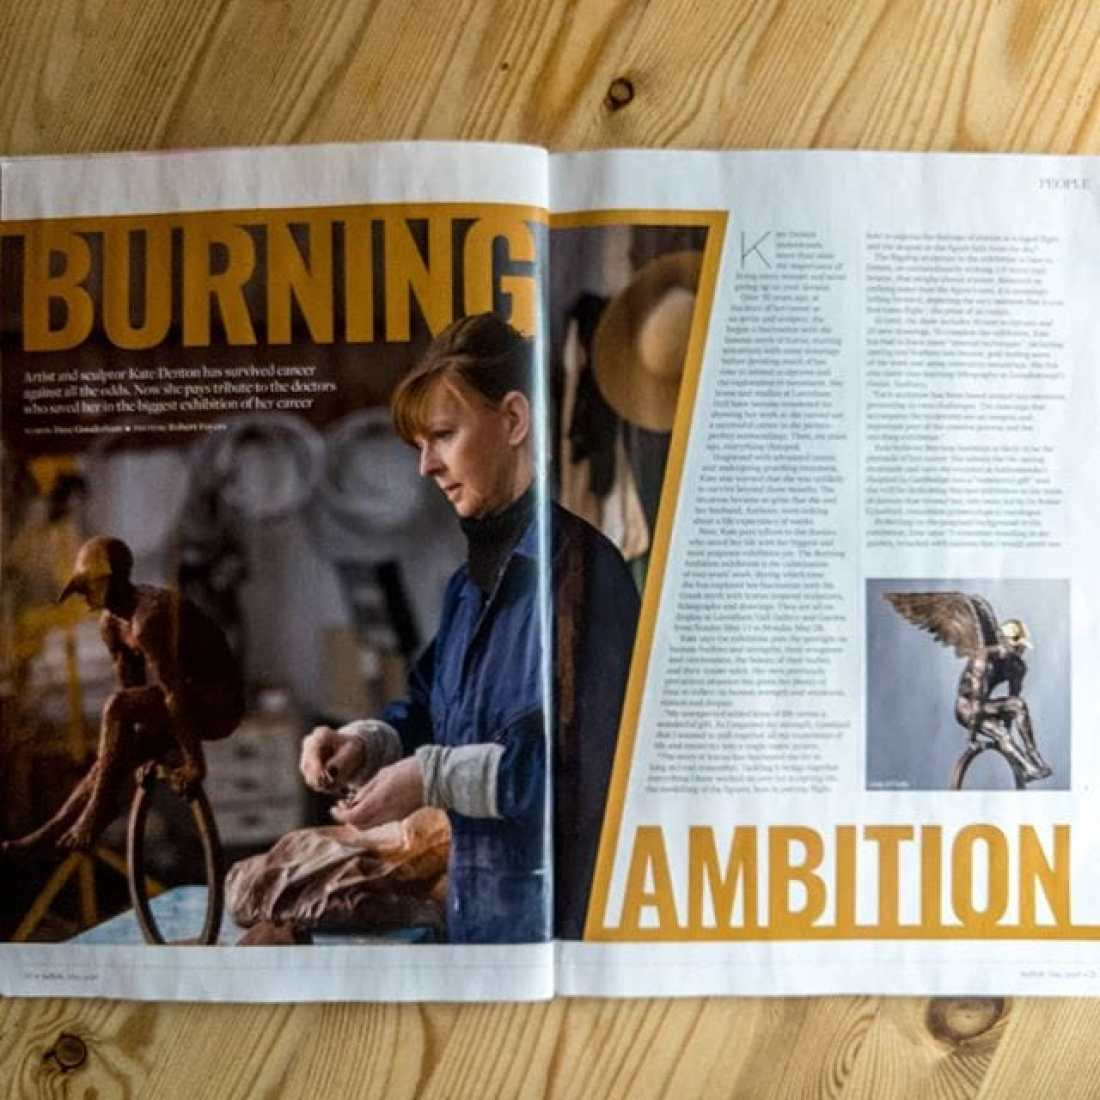 Love seeing my photography in print! Great article about Kate Denton in the latest Suffolk magazine. @kate_denton_sculpture @suffolkmag